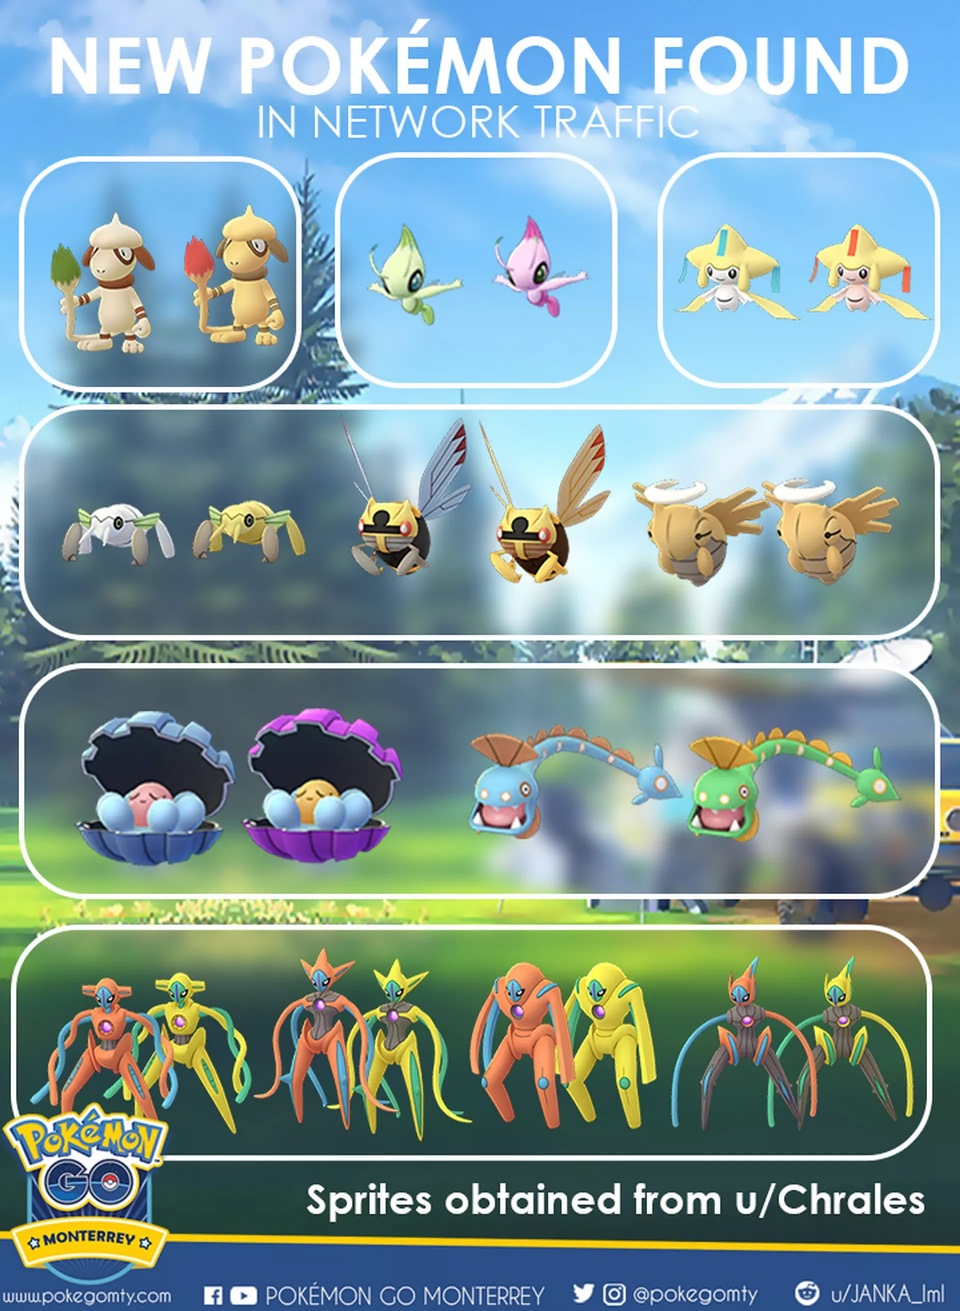 Pokemon go ways to get sinnoh stone